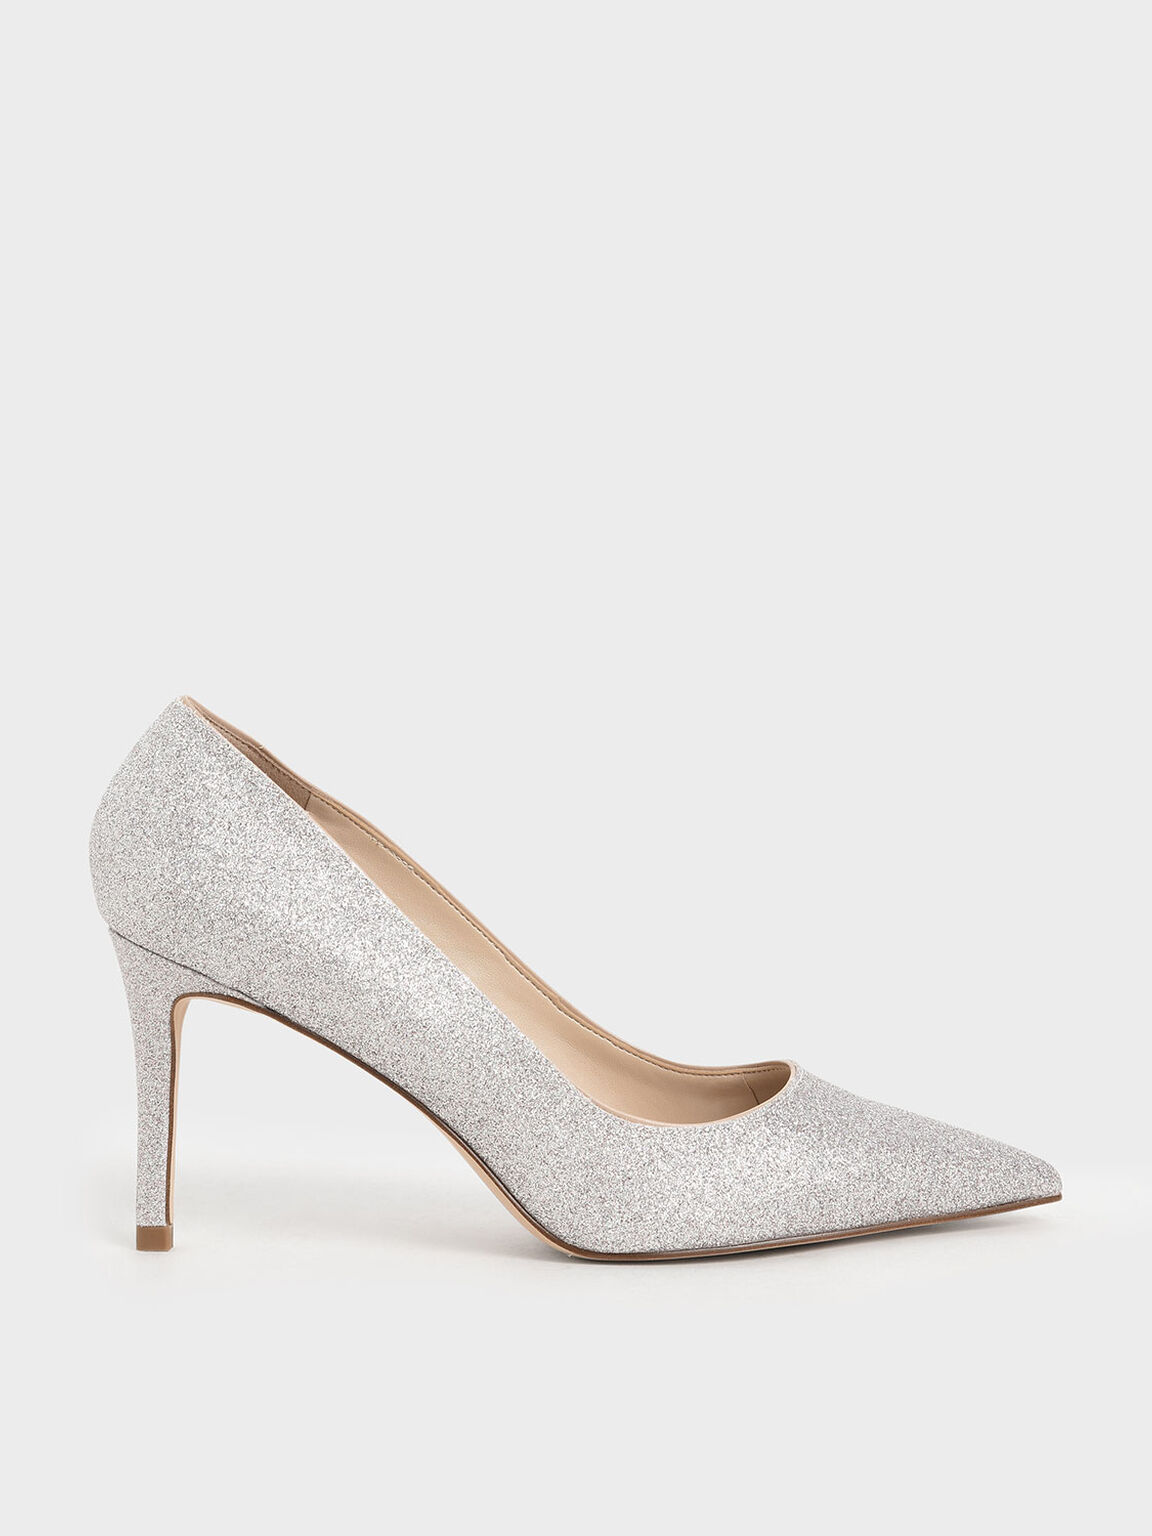 Glitter Stiletto Heel Pumps, Silver, hi-res